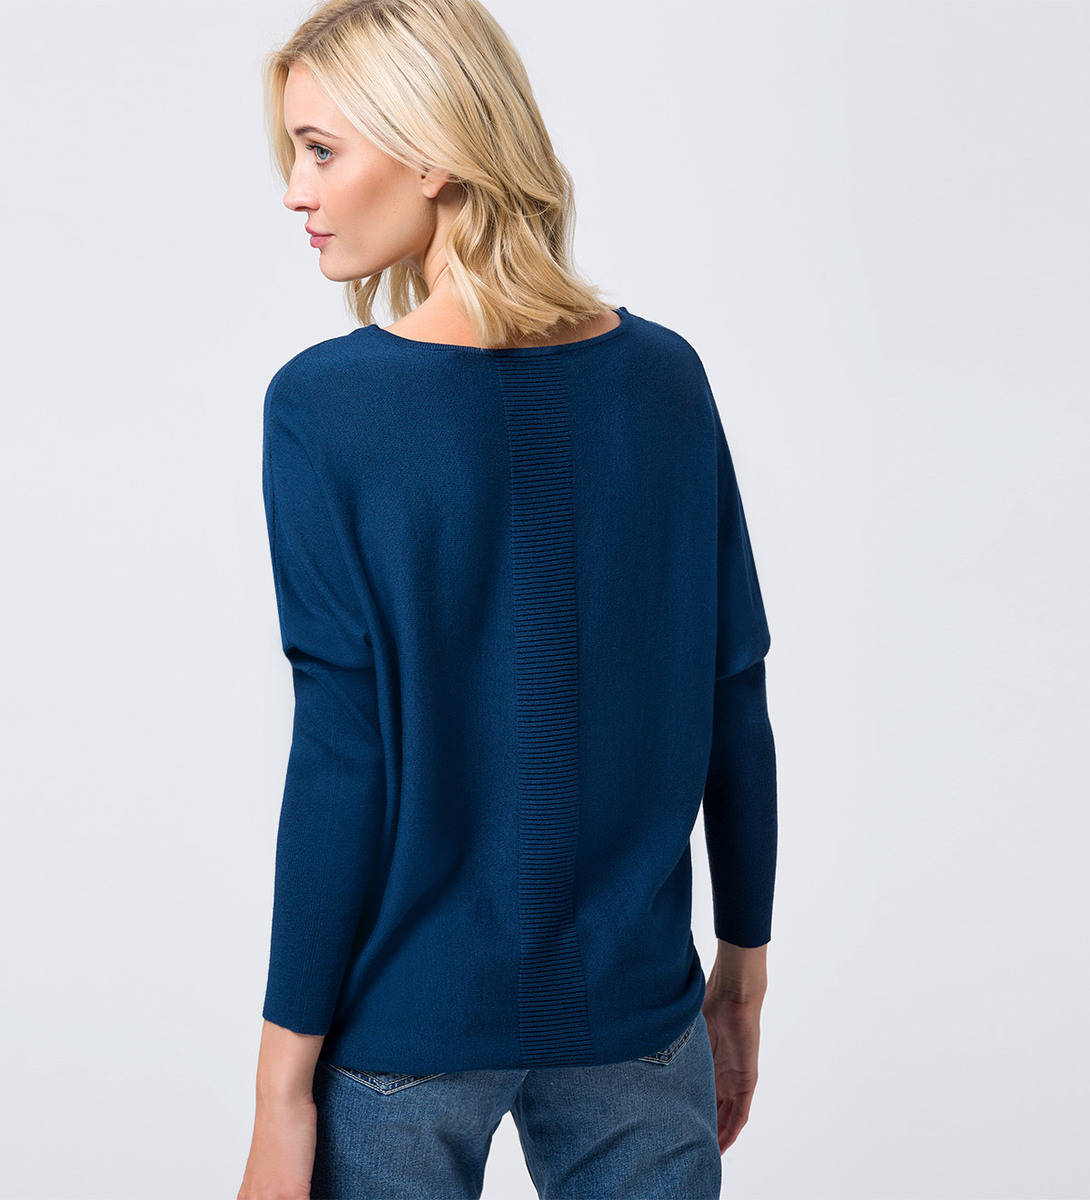 Pullover in Feinstrickqualität in petrol blue